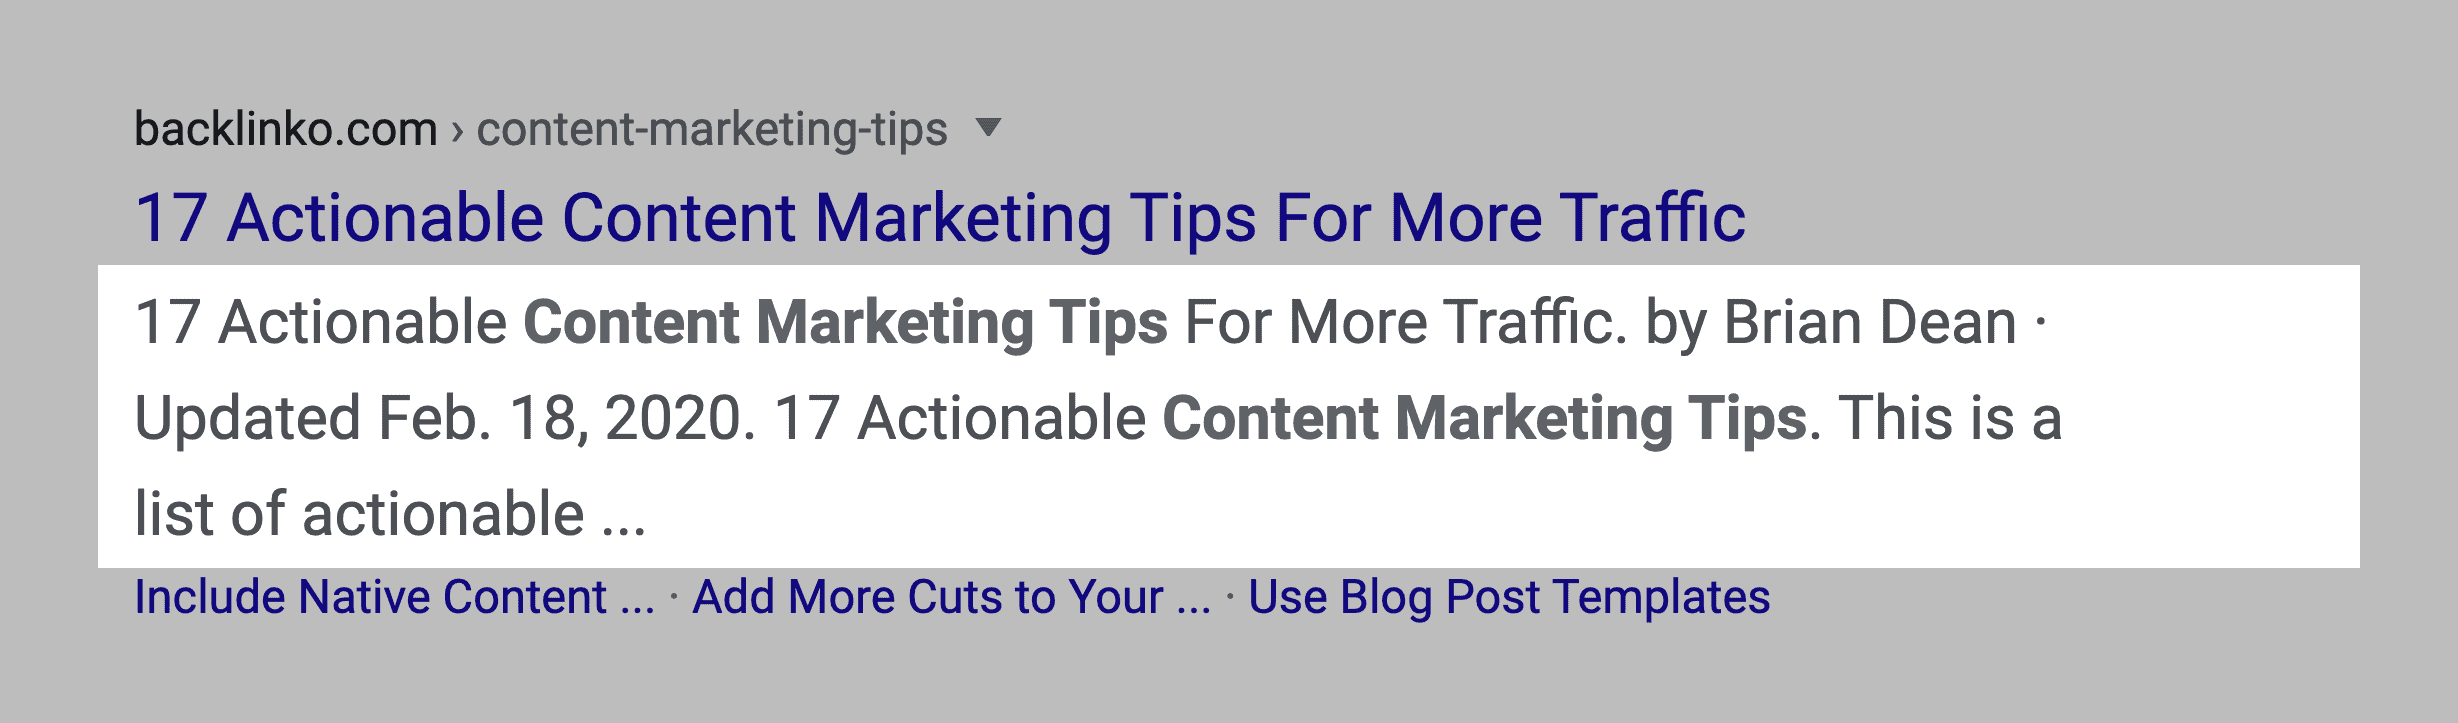 Content marketing tips post – Meta tags in SERPs